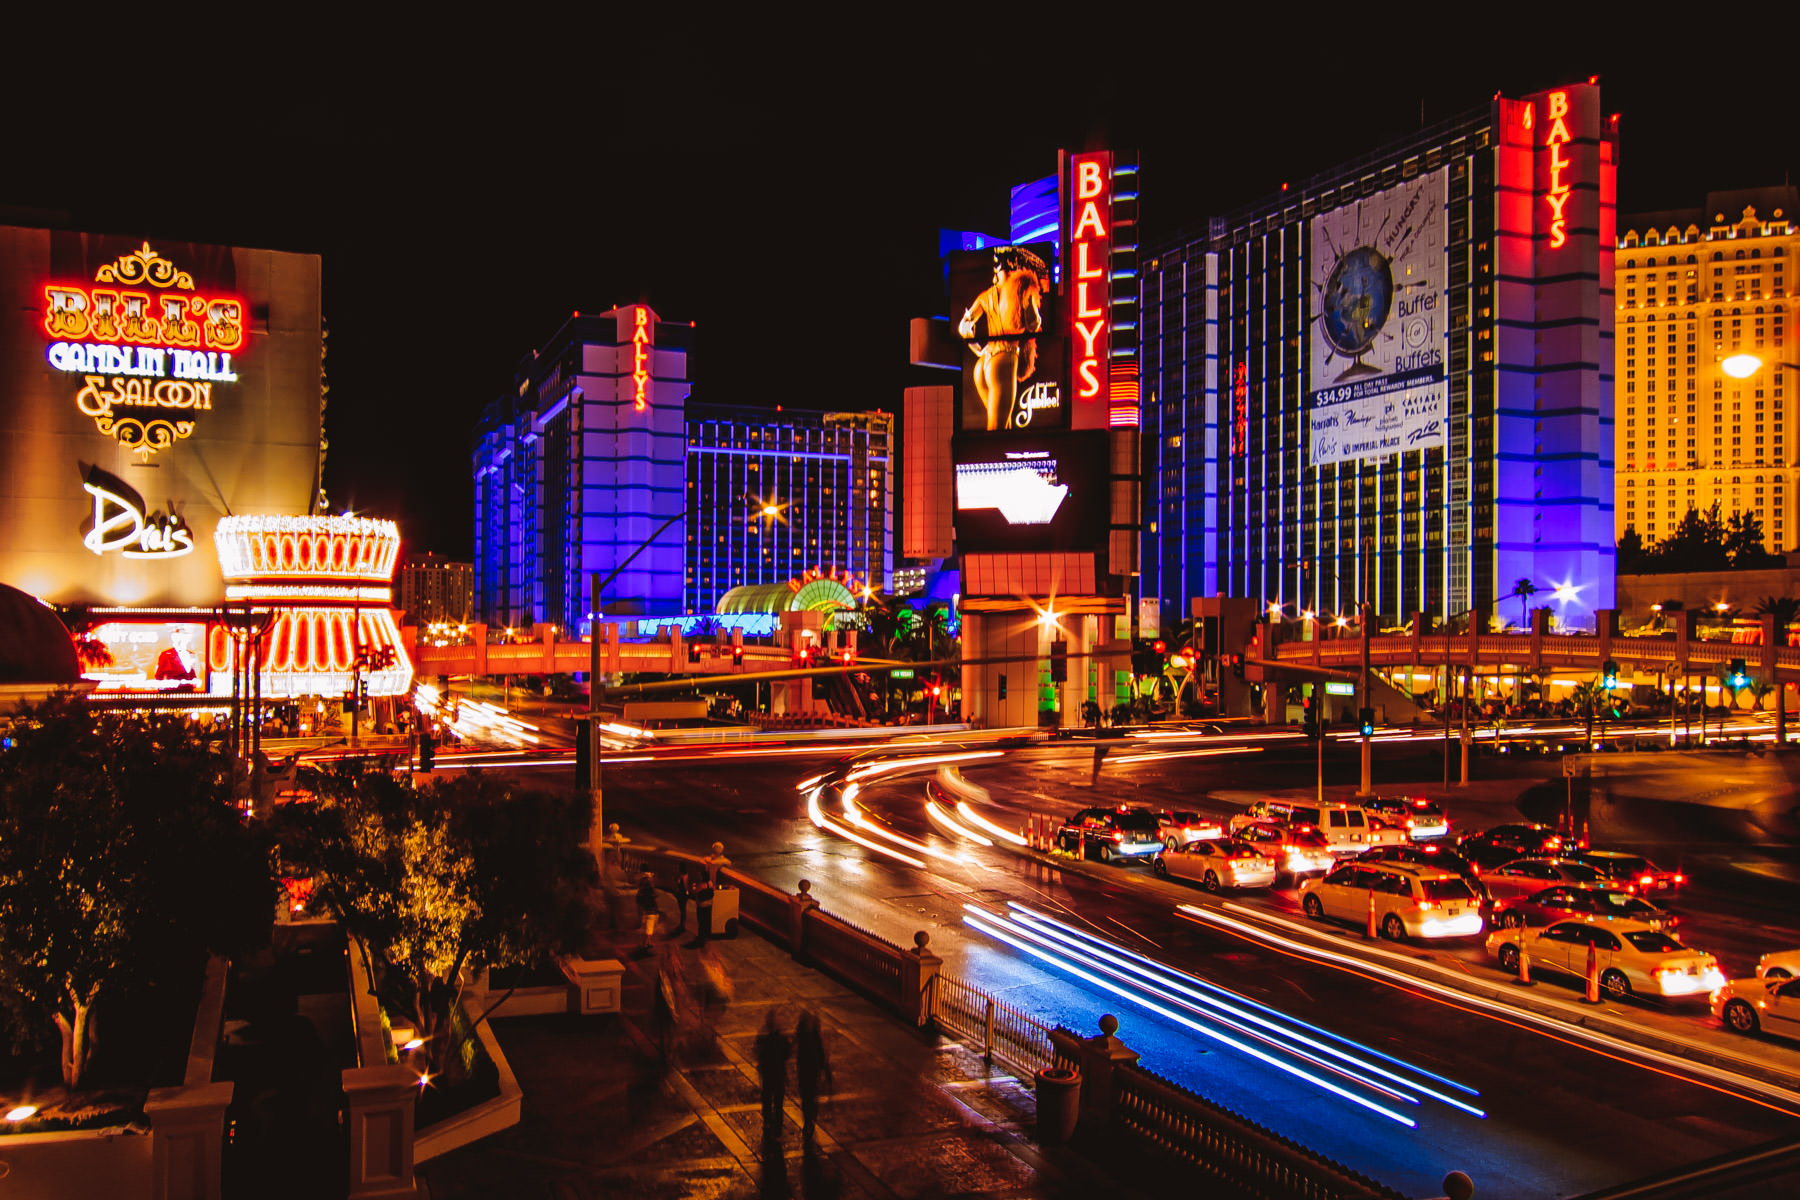 The intersection of Las Vegas Boulevard (The Strip) and Flamingo Road.